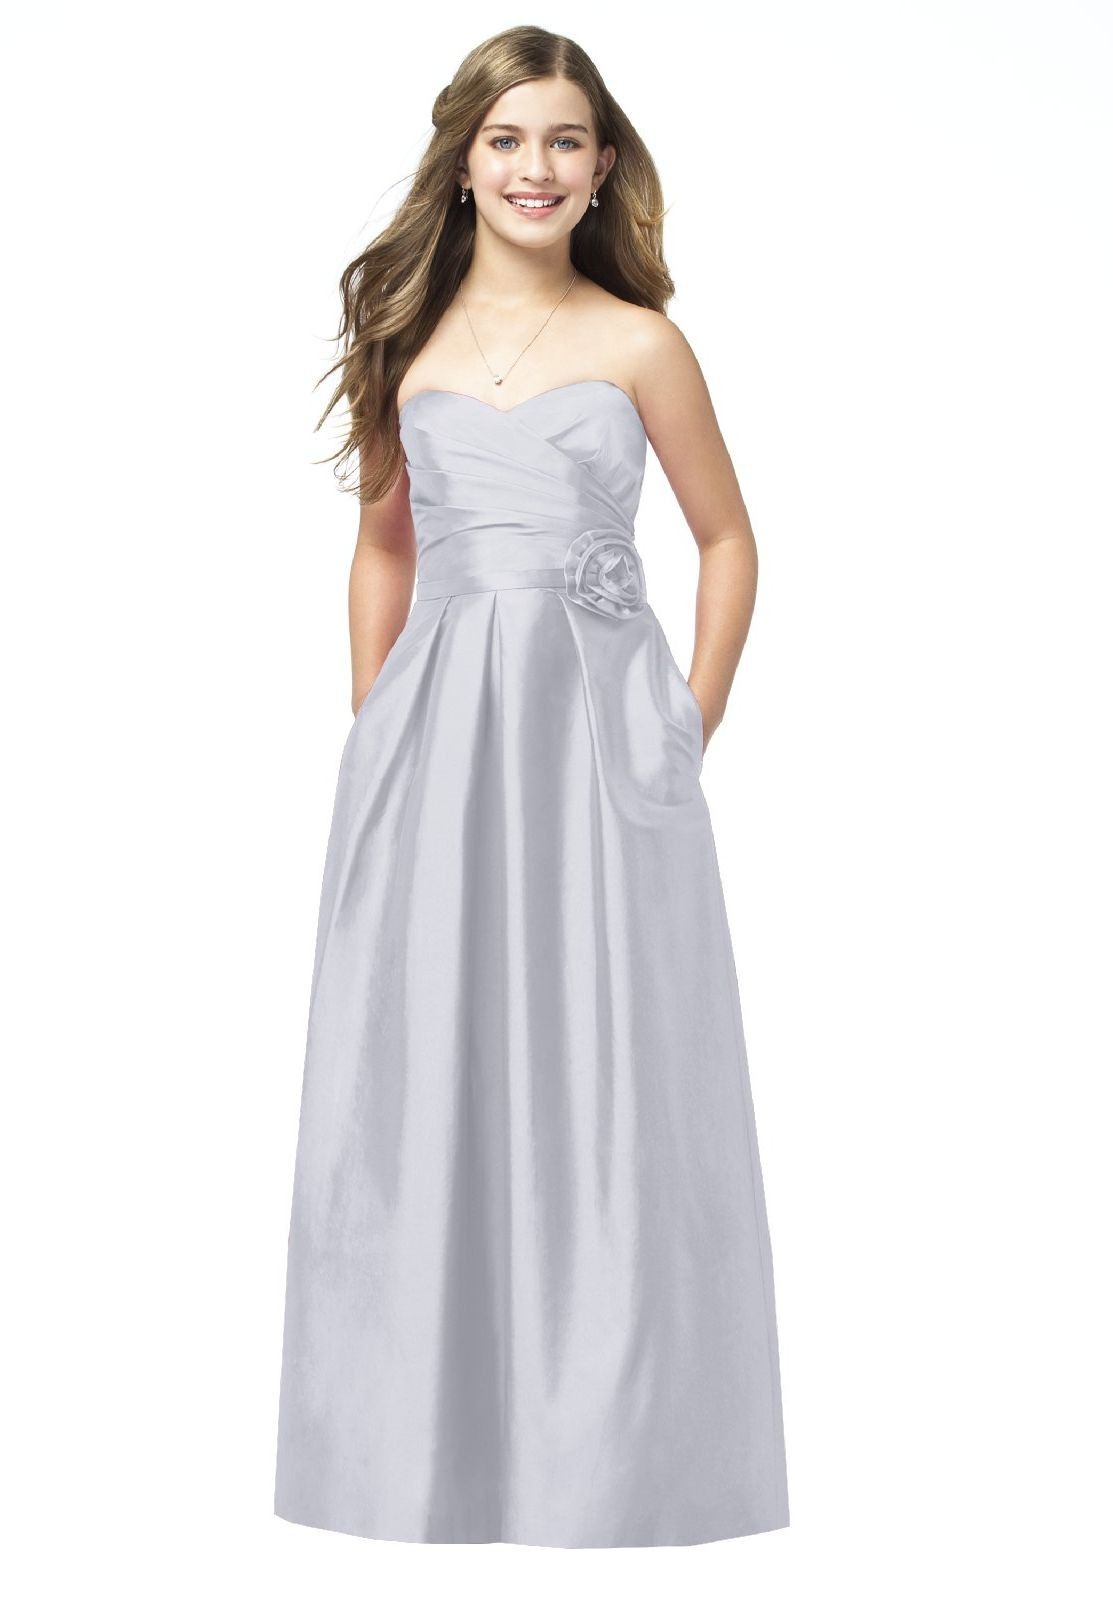 Long junior bridemaid dresses dresses satin strapless dessy collection junior bridesmaid style jr 505 is the junior version of style strapless full length dupioni dress with sweetheart pleated surplice bodice ombrellifo Gallery